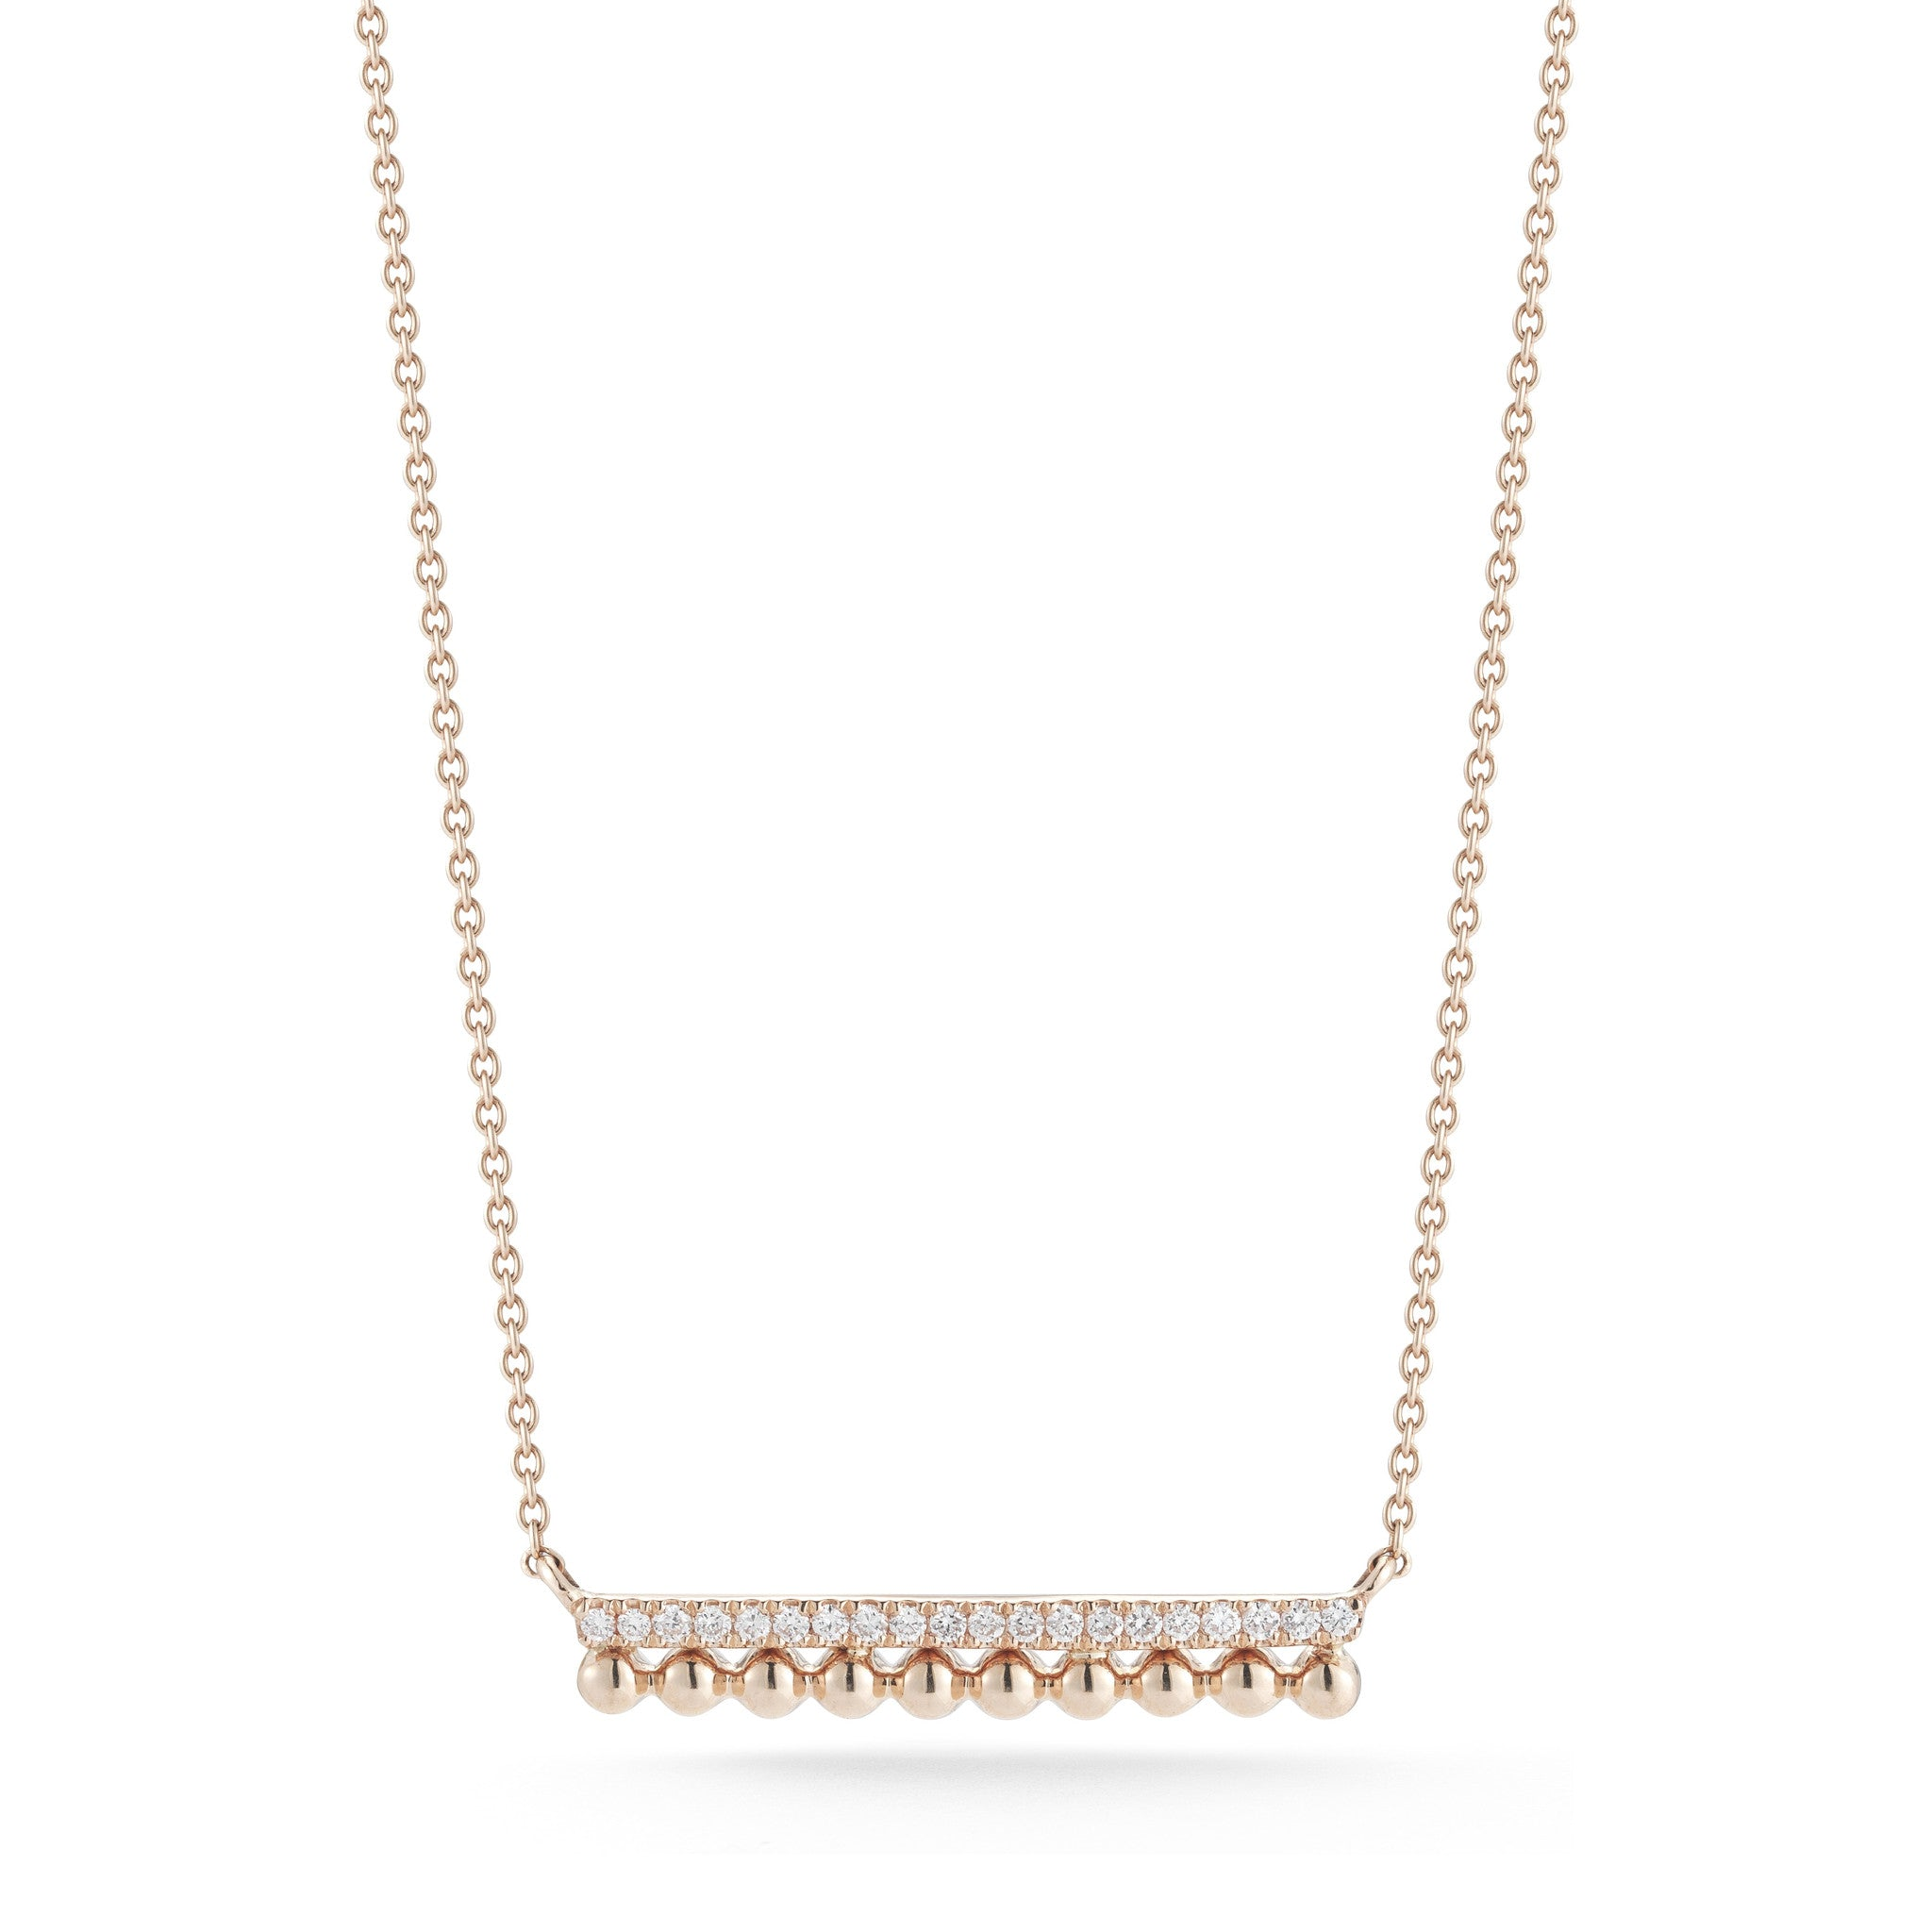 Poppy Rae 14K Bar Necklace